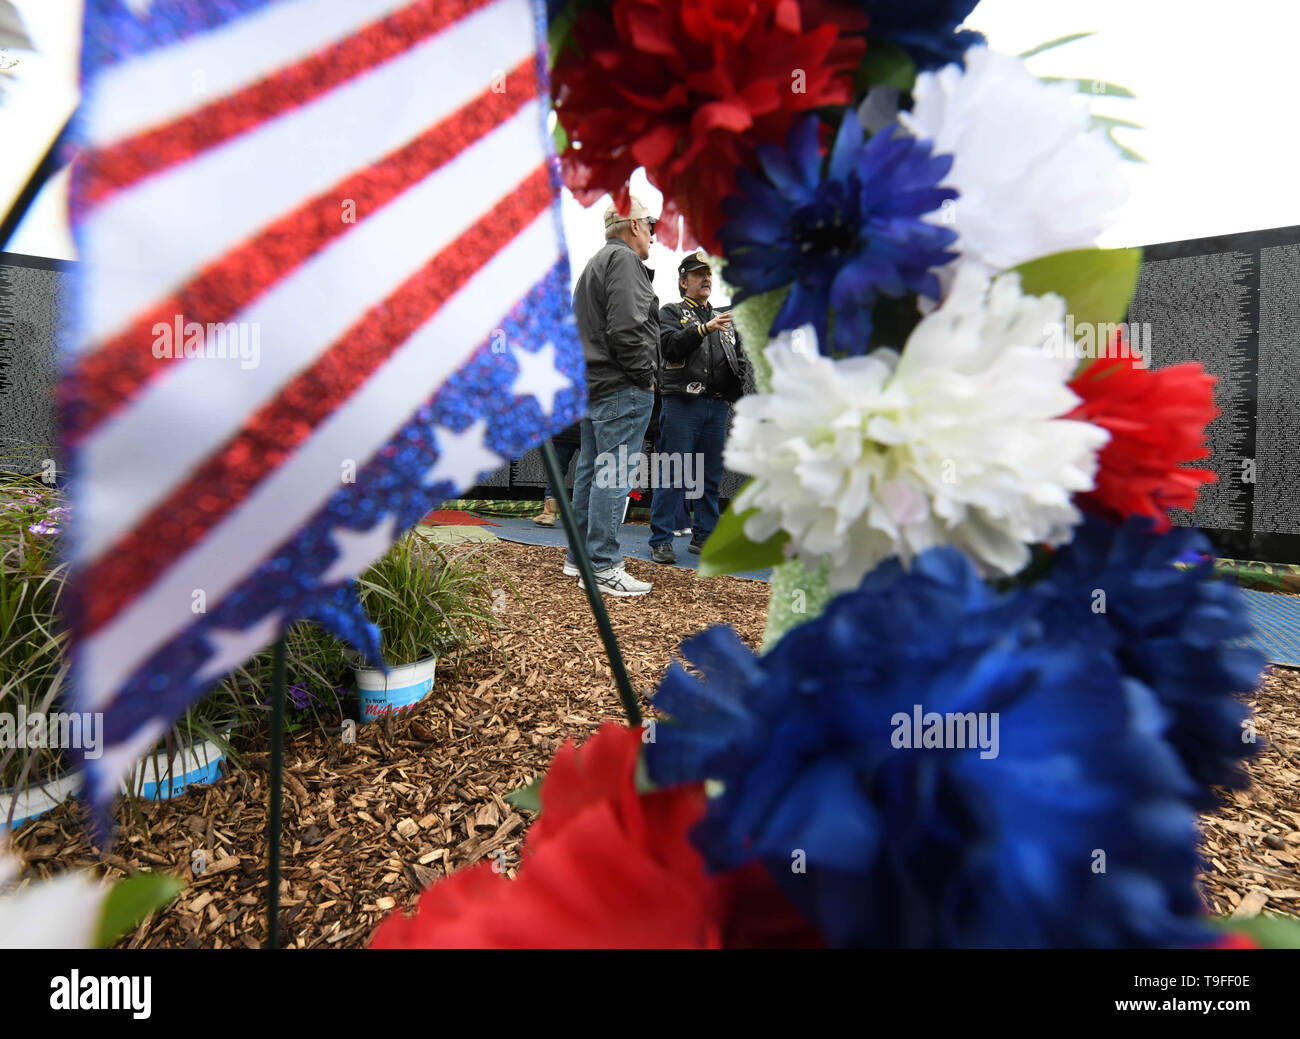 Racine, Wisconsin, USA. 18th May, 2019. Visitors to the Moving Wall, a half-size replica of the Vietnam Veterans Memorial, in Racine, Wisconsin, are framed by a wreath Saturday May 18, 2019. He died on Berry's birthday. Forty-seven soldiers from Racine were killed during the war. The Moving Wall has been touring the United States for more than 30 years. Credit: Mark Hertzberg/ZUMA Wire/Alamy Live News - Stock Image